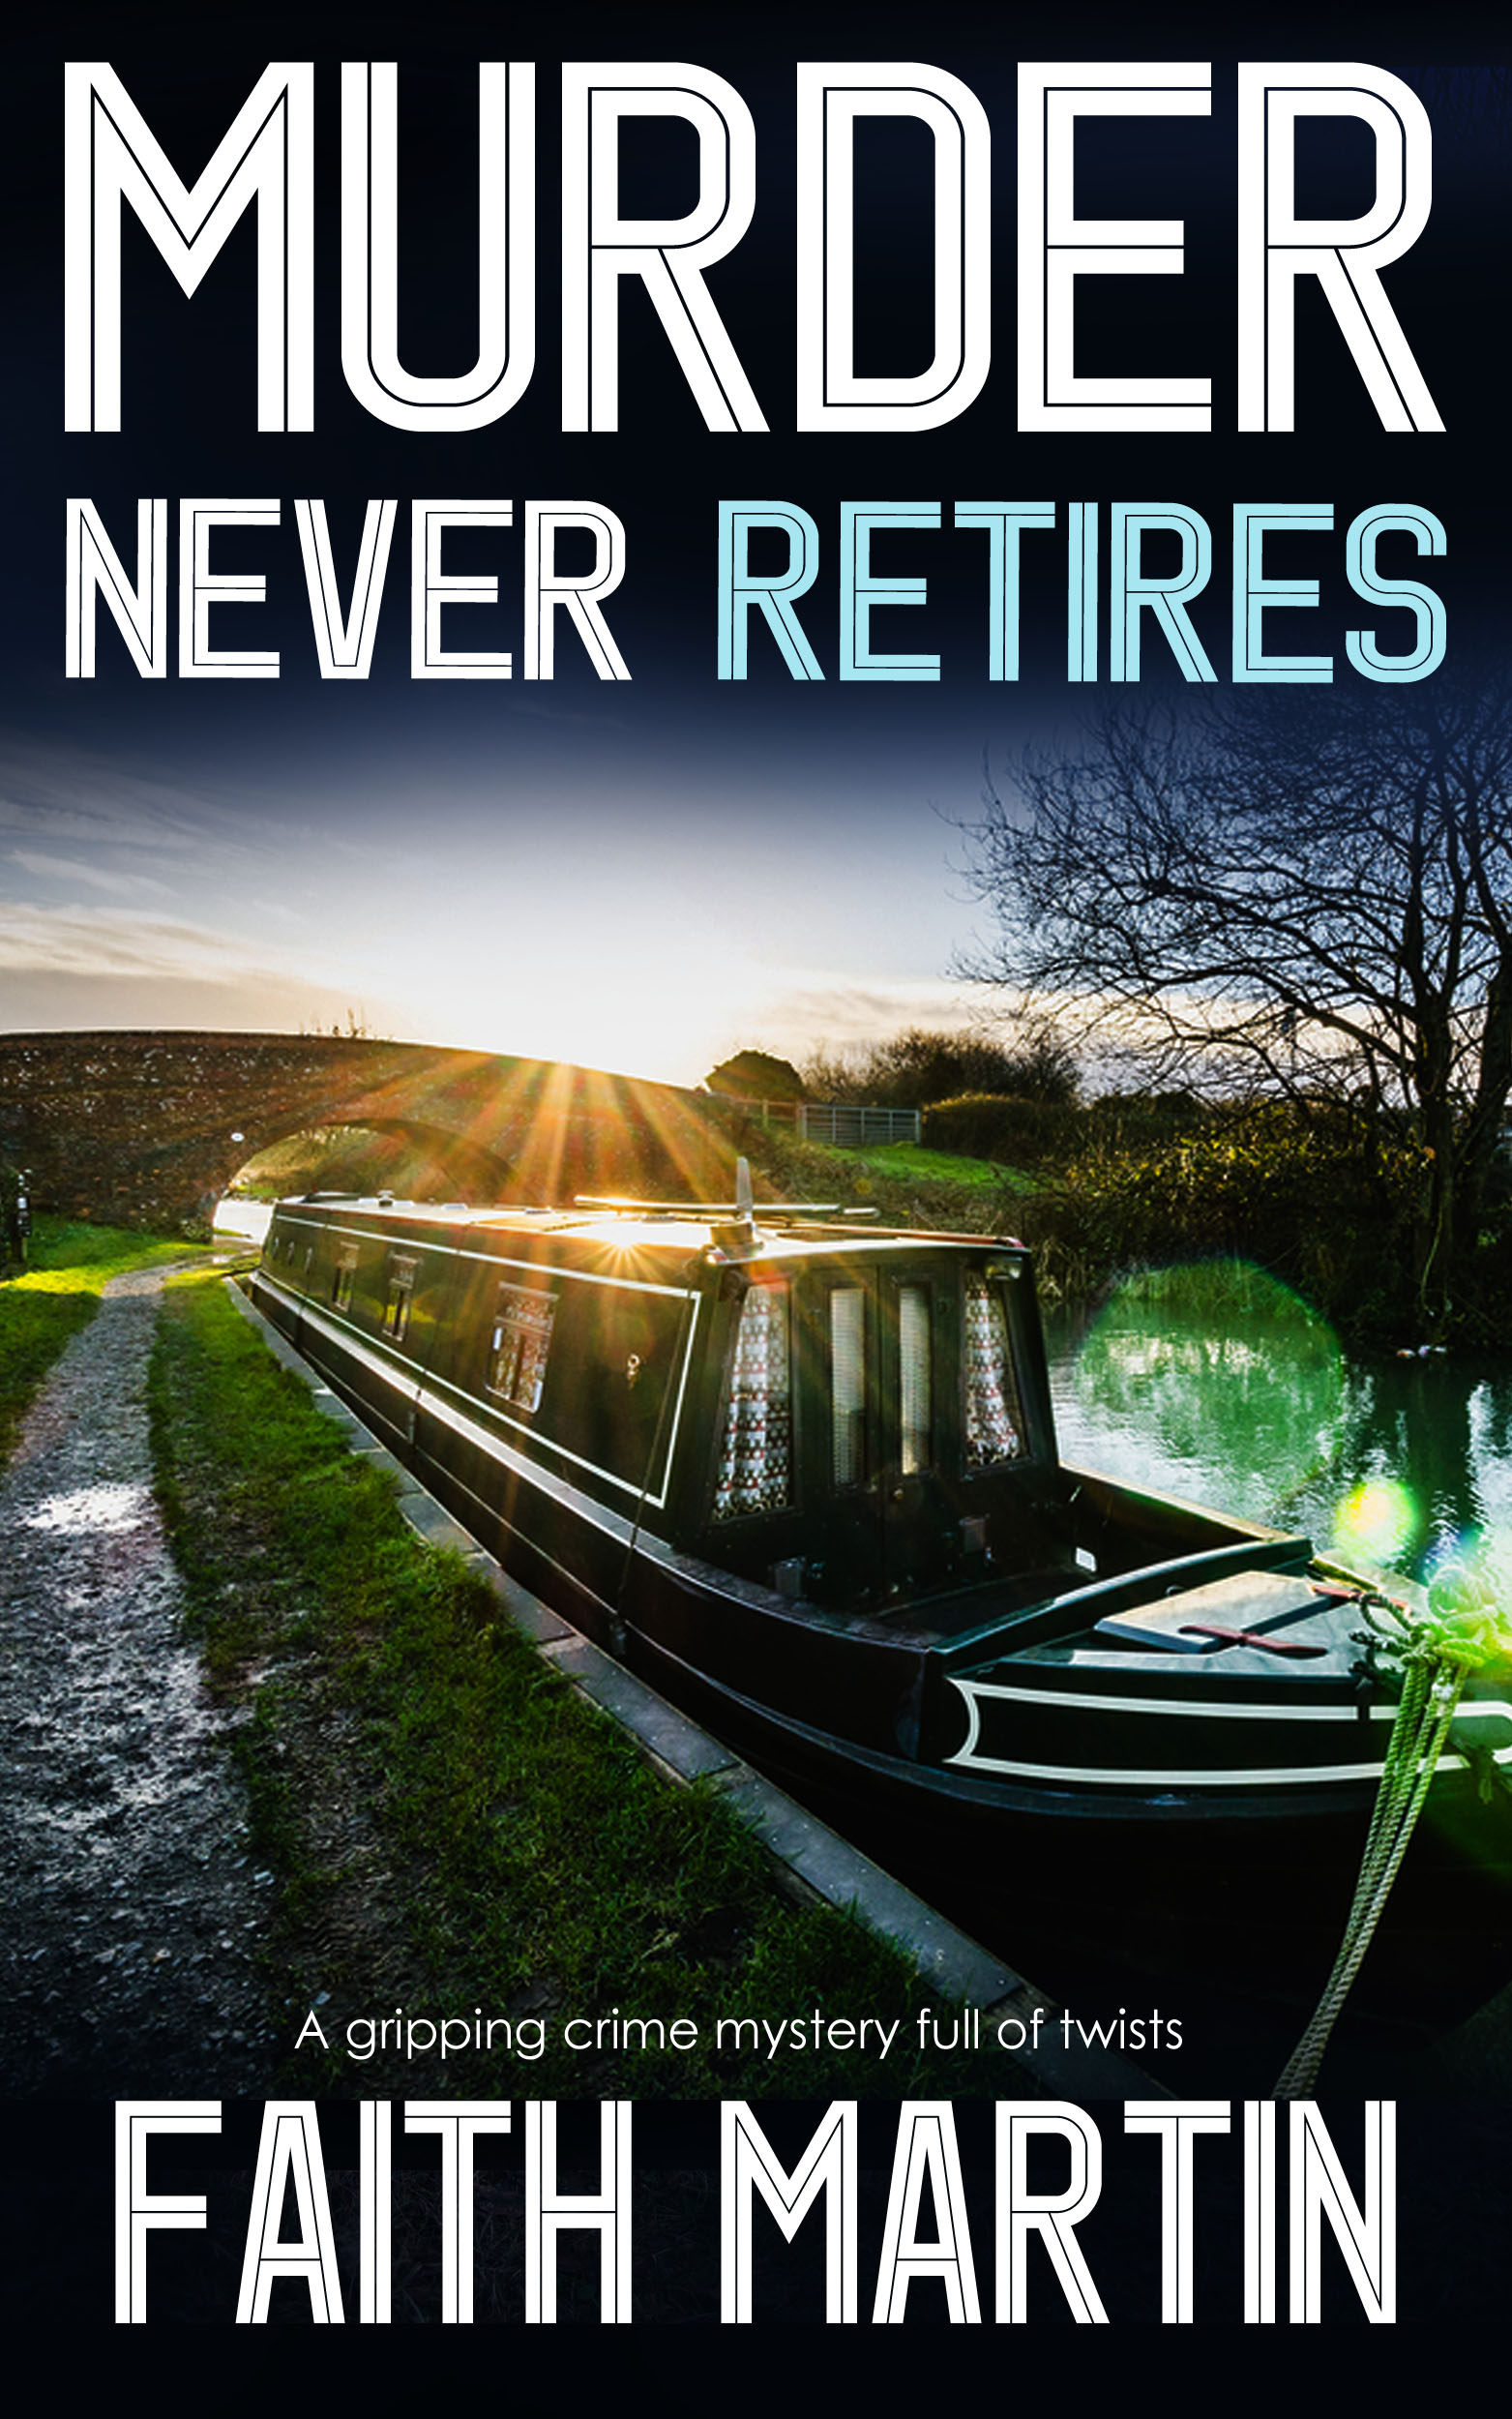 MURDER NEVER RETIRES cover